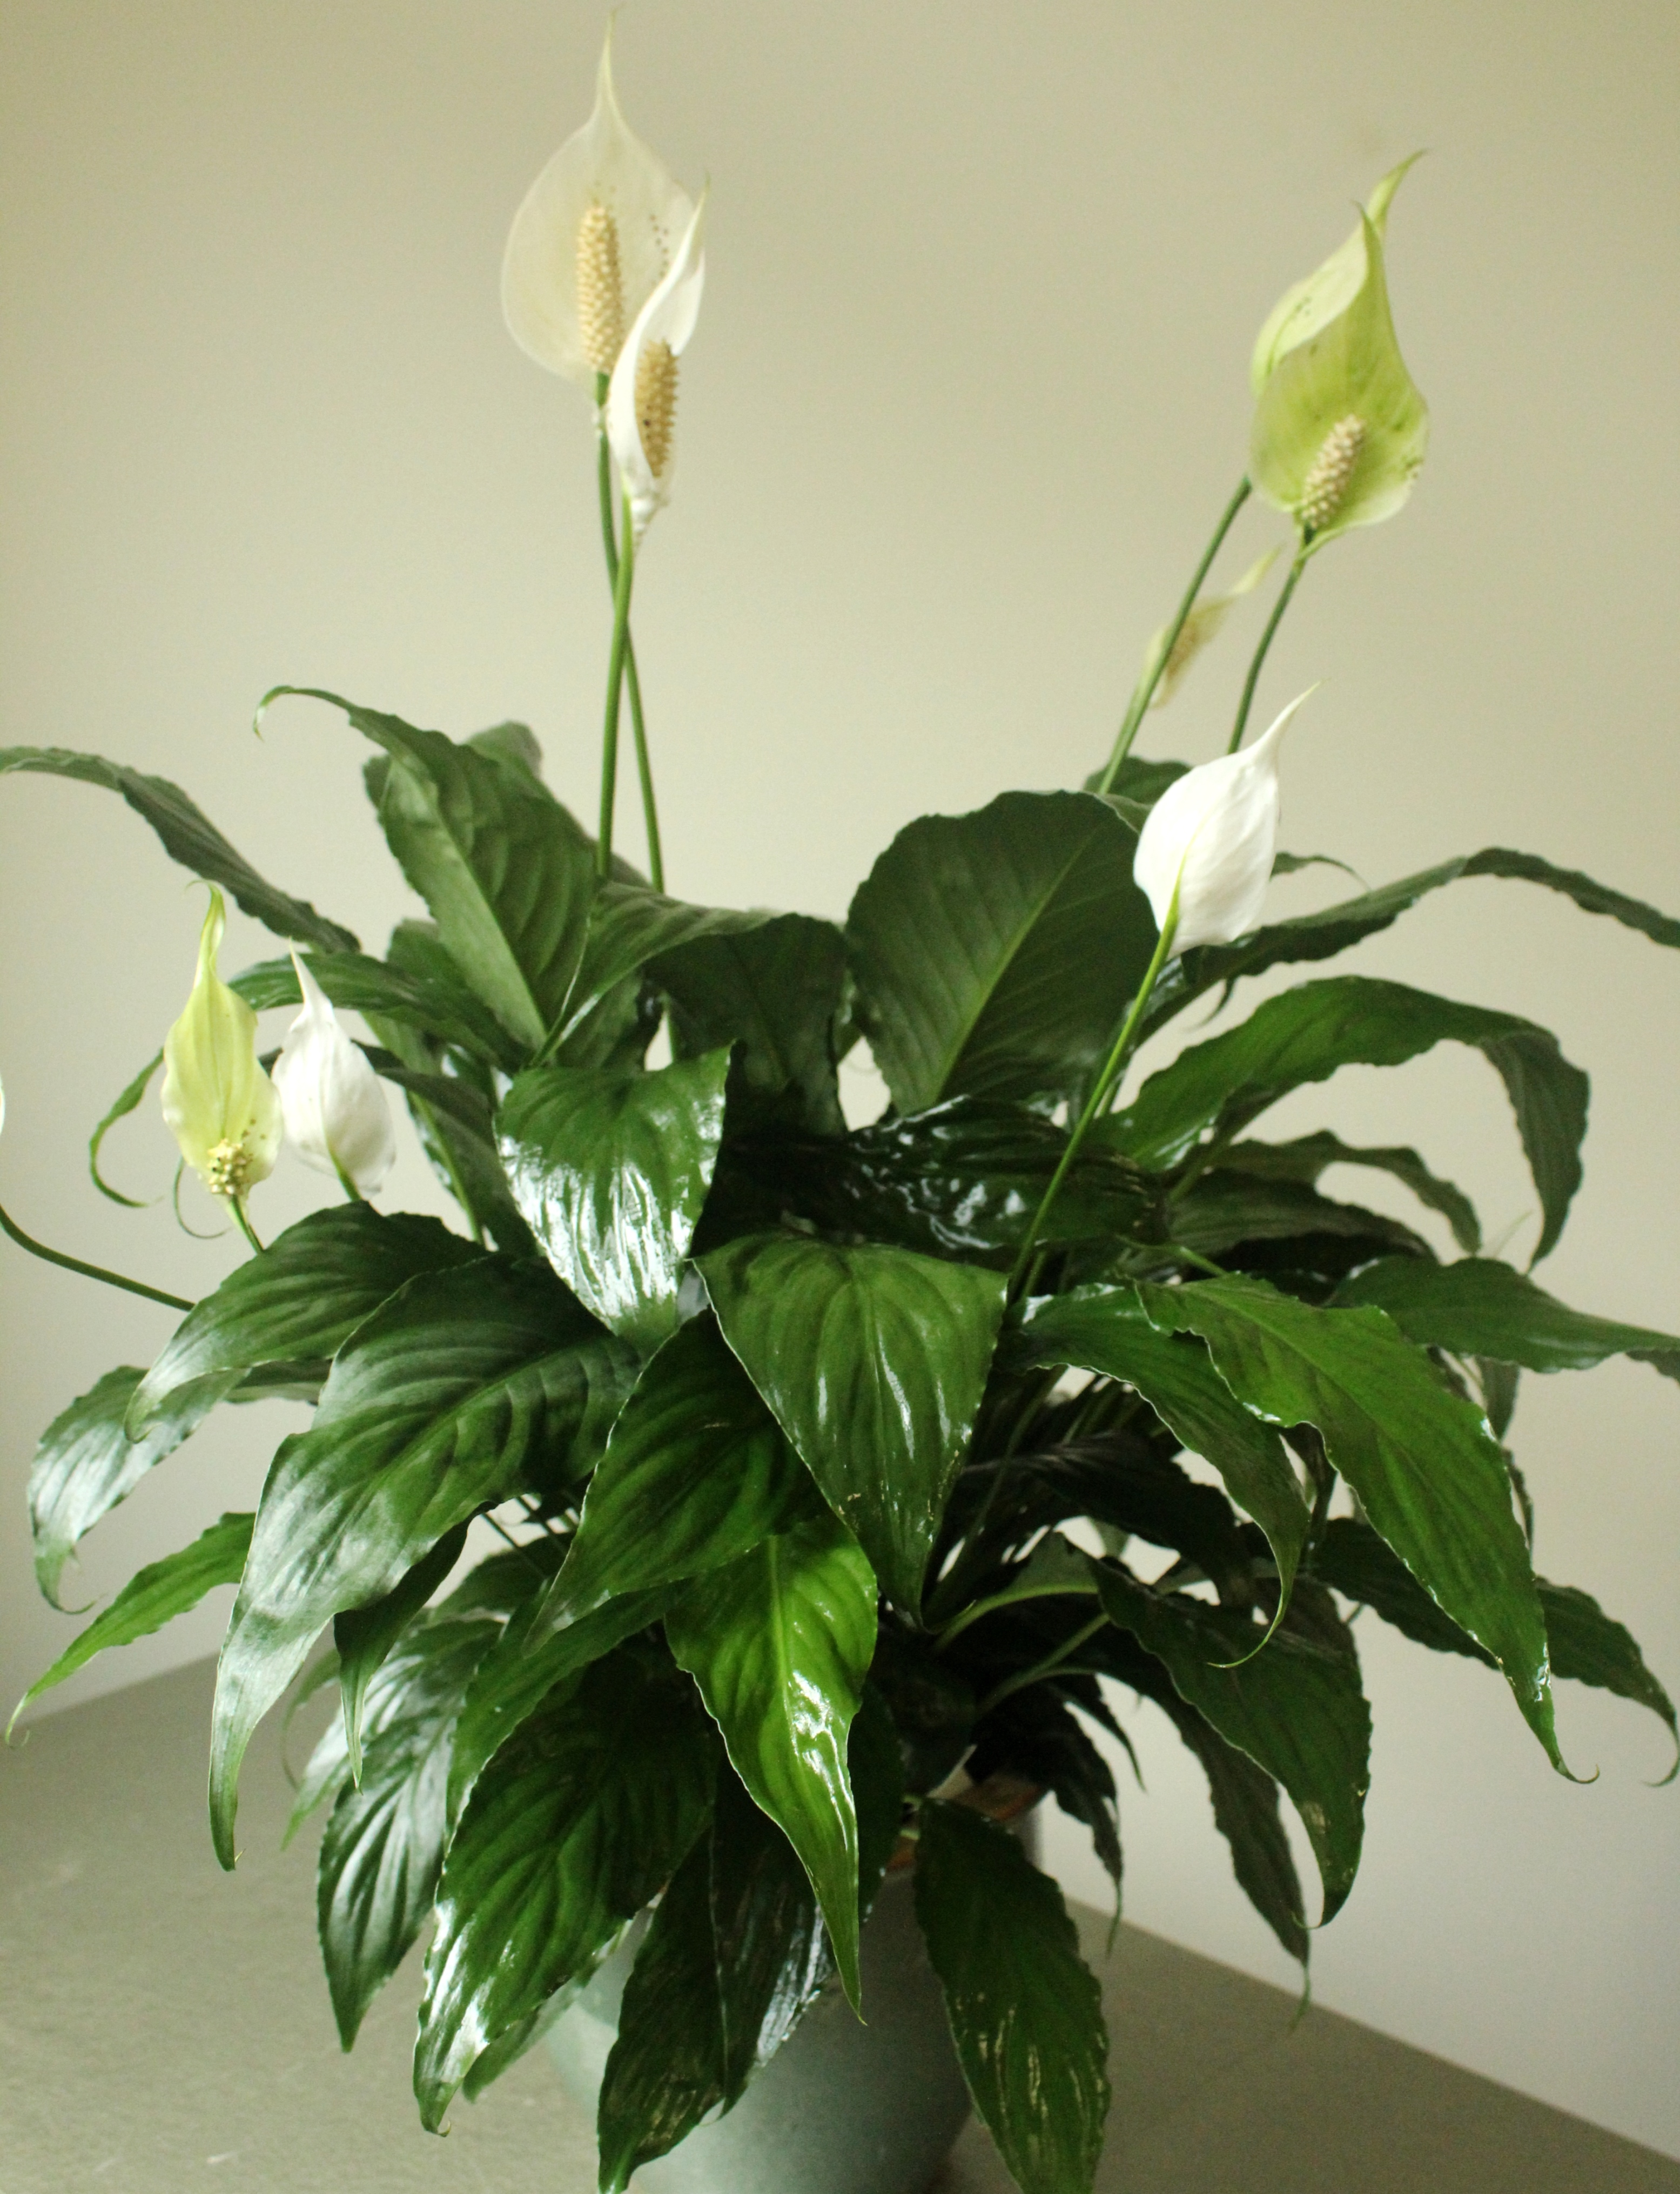 Free photo lily plants pedals pretty free download jooinn studleys peace lily green plant studleys flower gardens izmirmasajfo